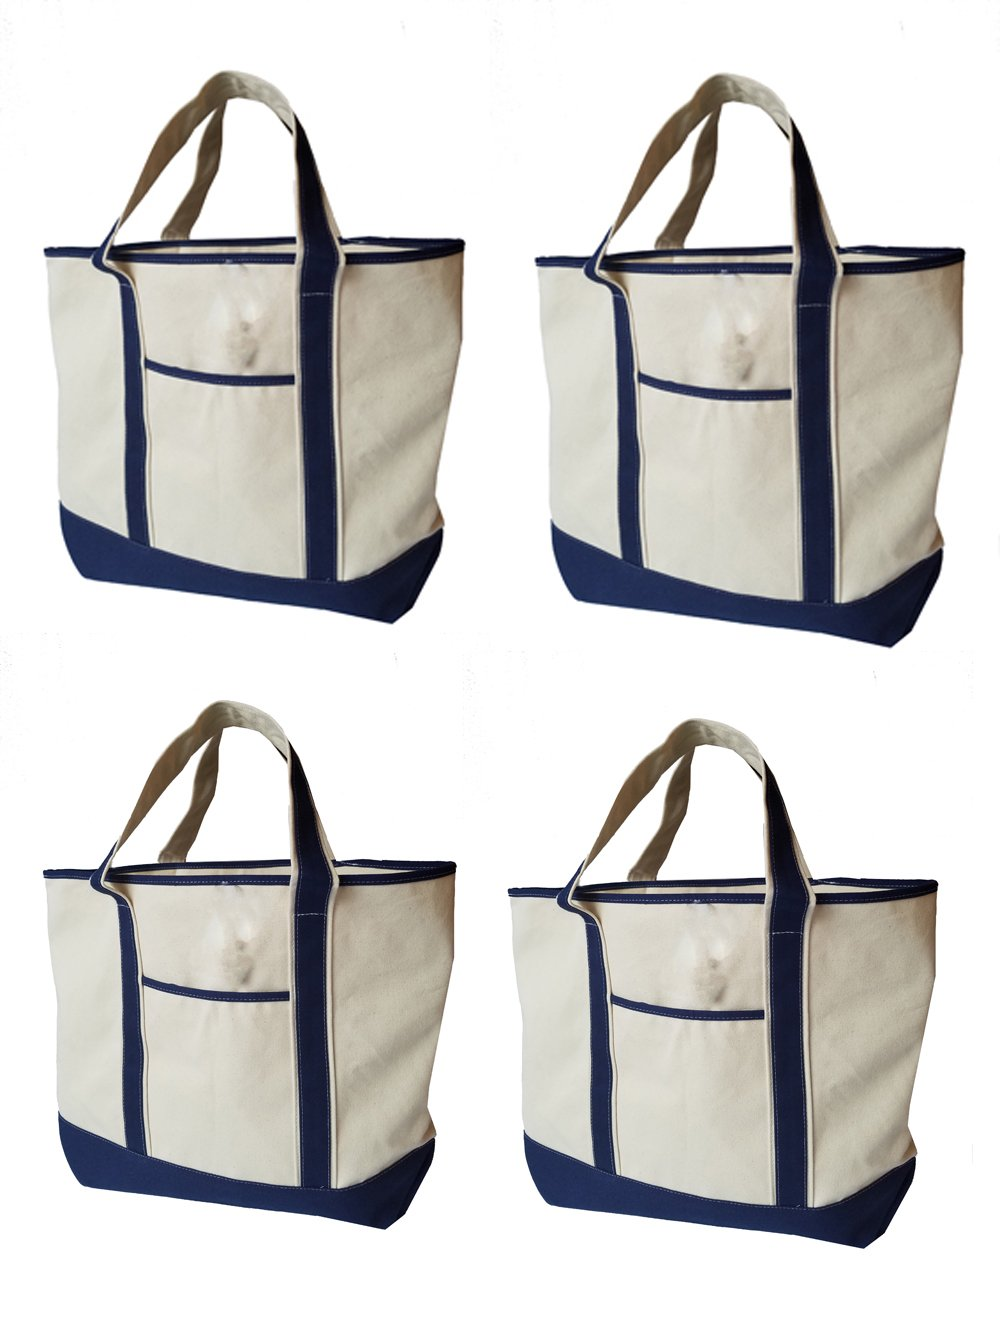 22'' x 16'' Heavy Duty Deluxe Canvas Travel Tote Bag - Cotton, shoulder straps, canvas bags are double-stitched for durability to handle wet towels and beach gear. (PACK OF 4, Navy)